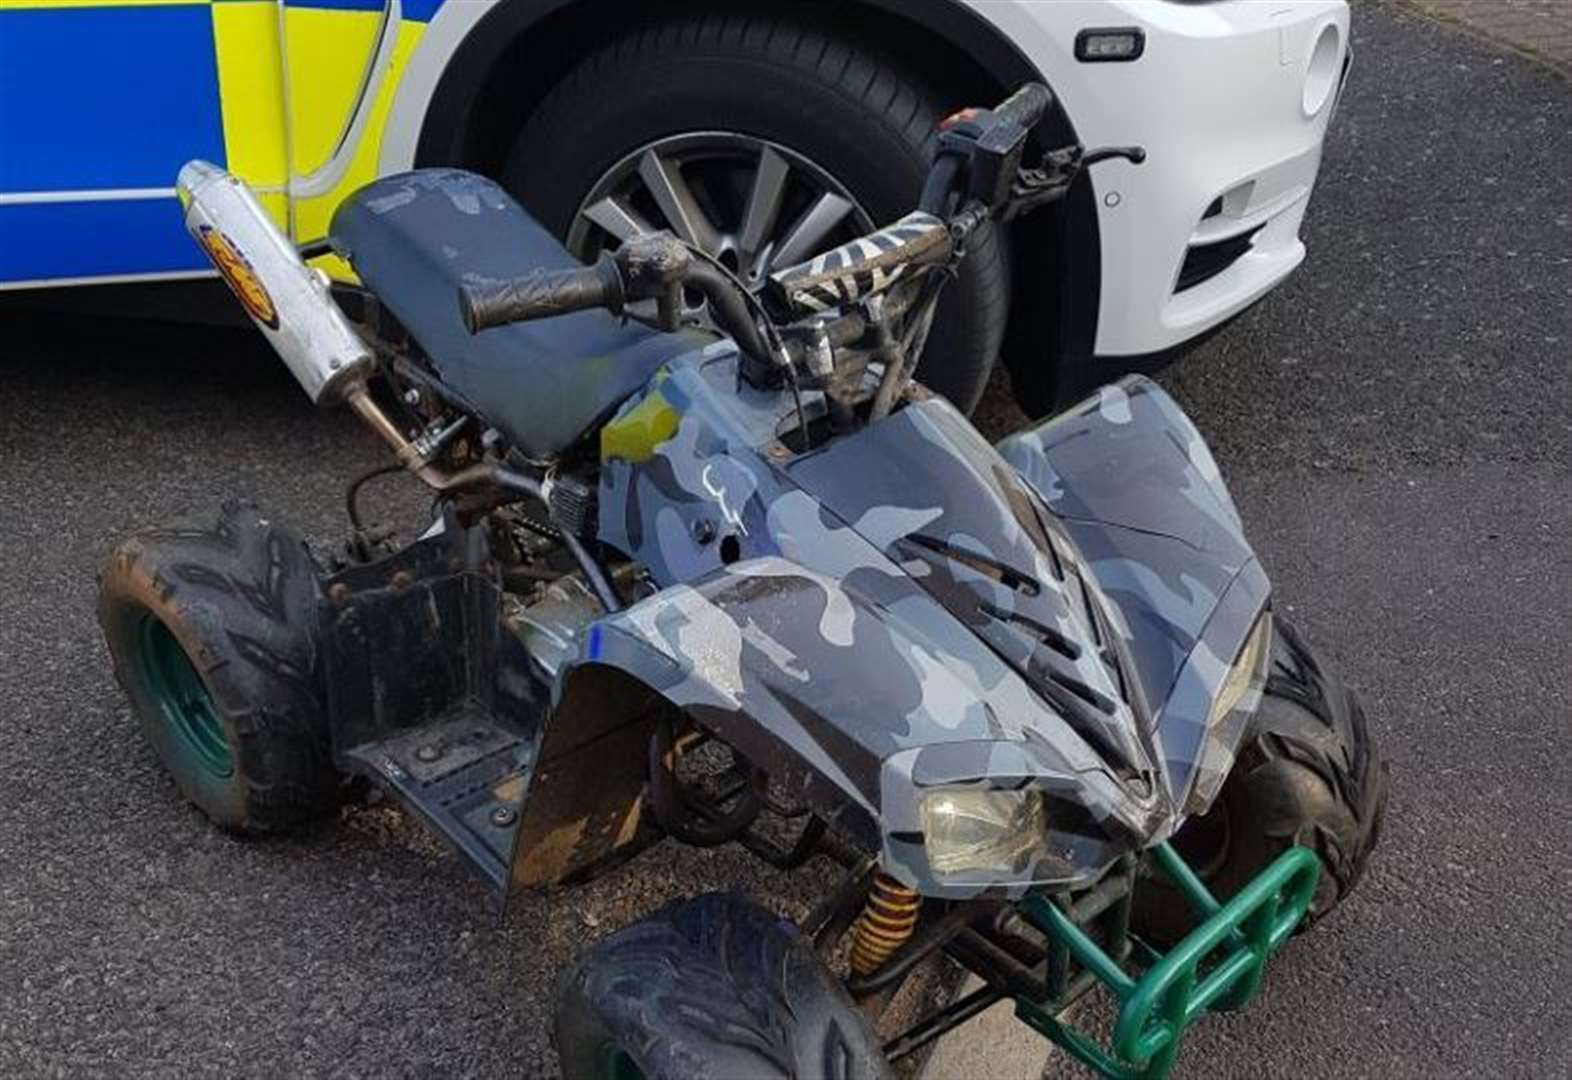 'Mindless' quad and off-road bikers in Chatteris face having their vehicles seized before someone is 'killed'